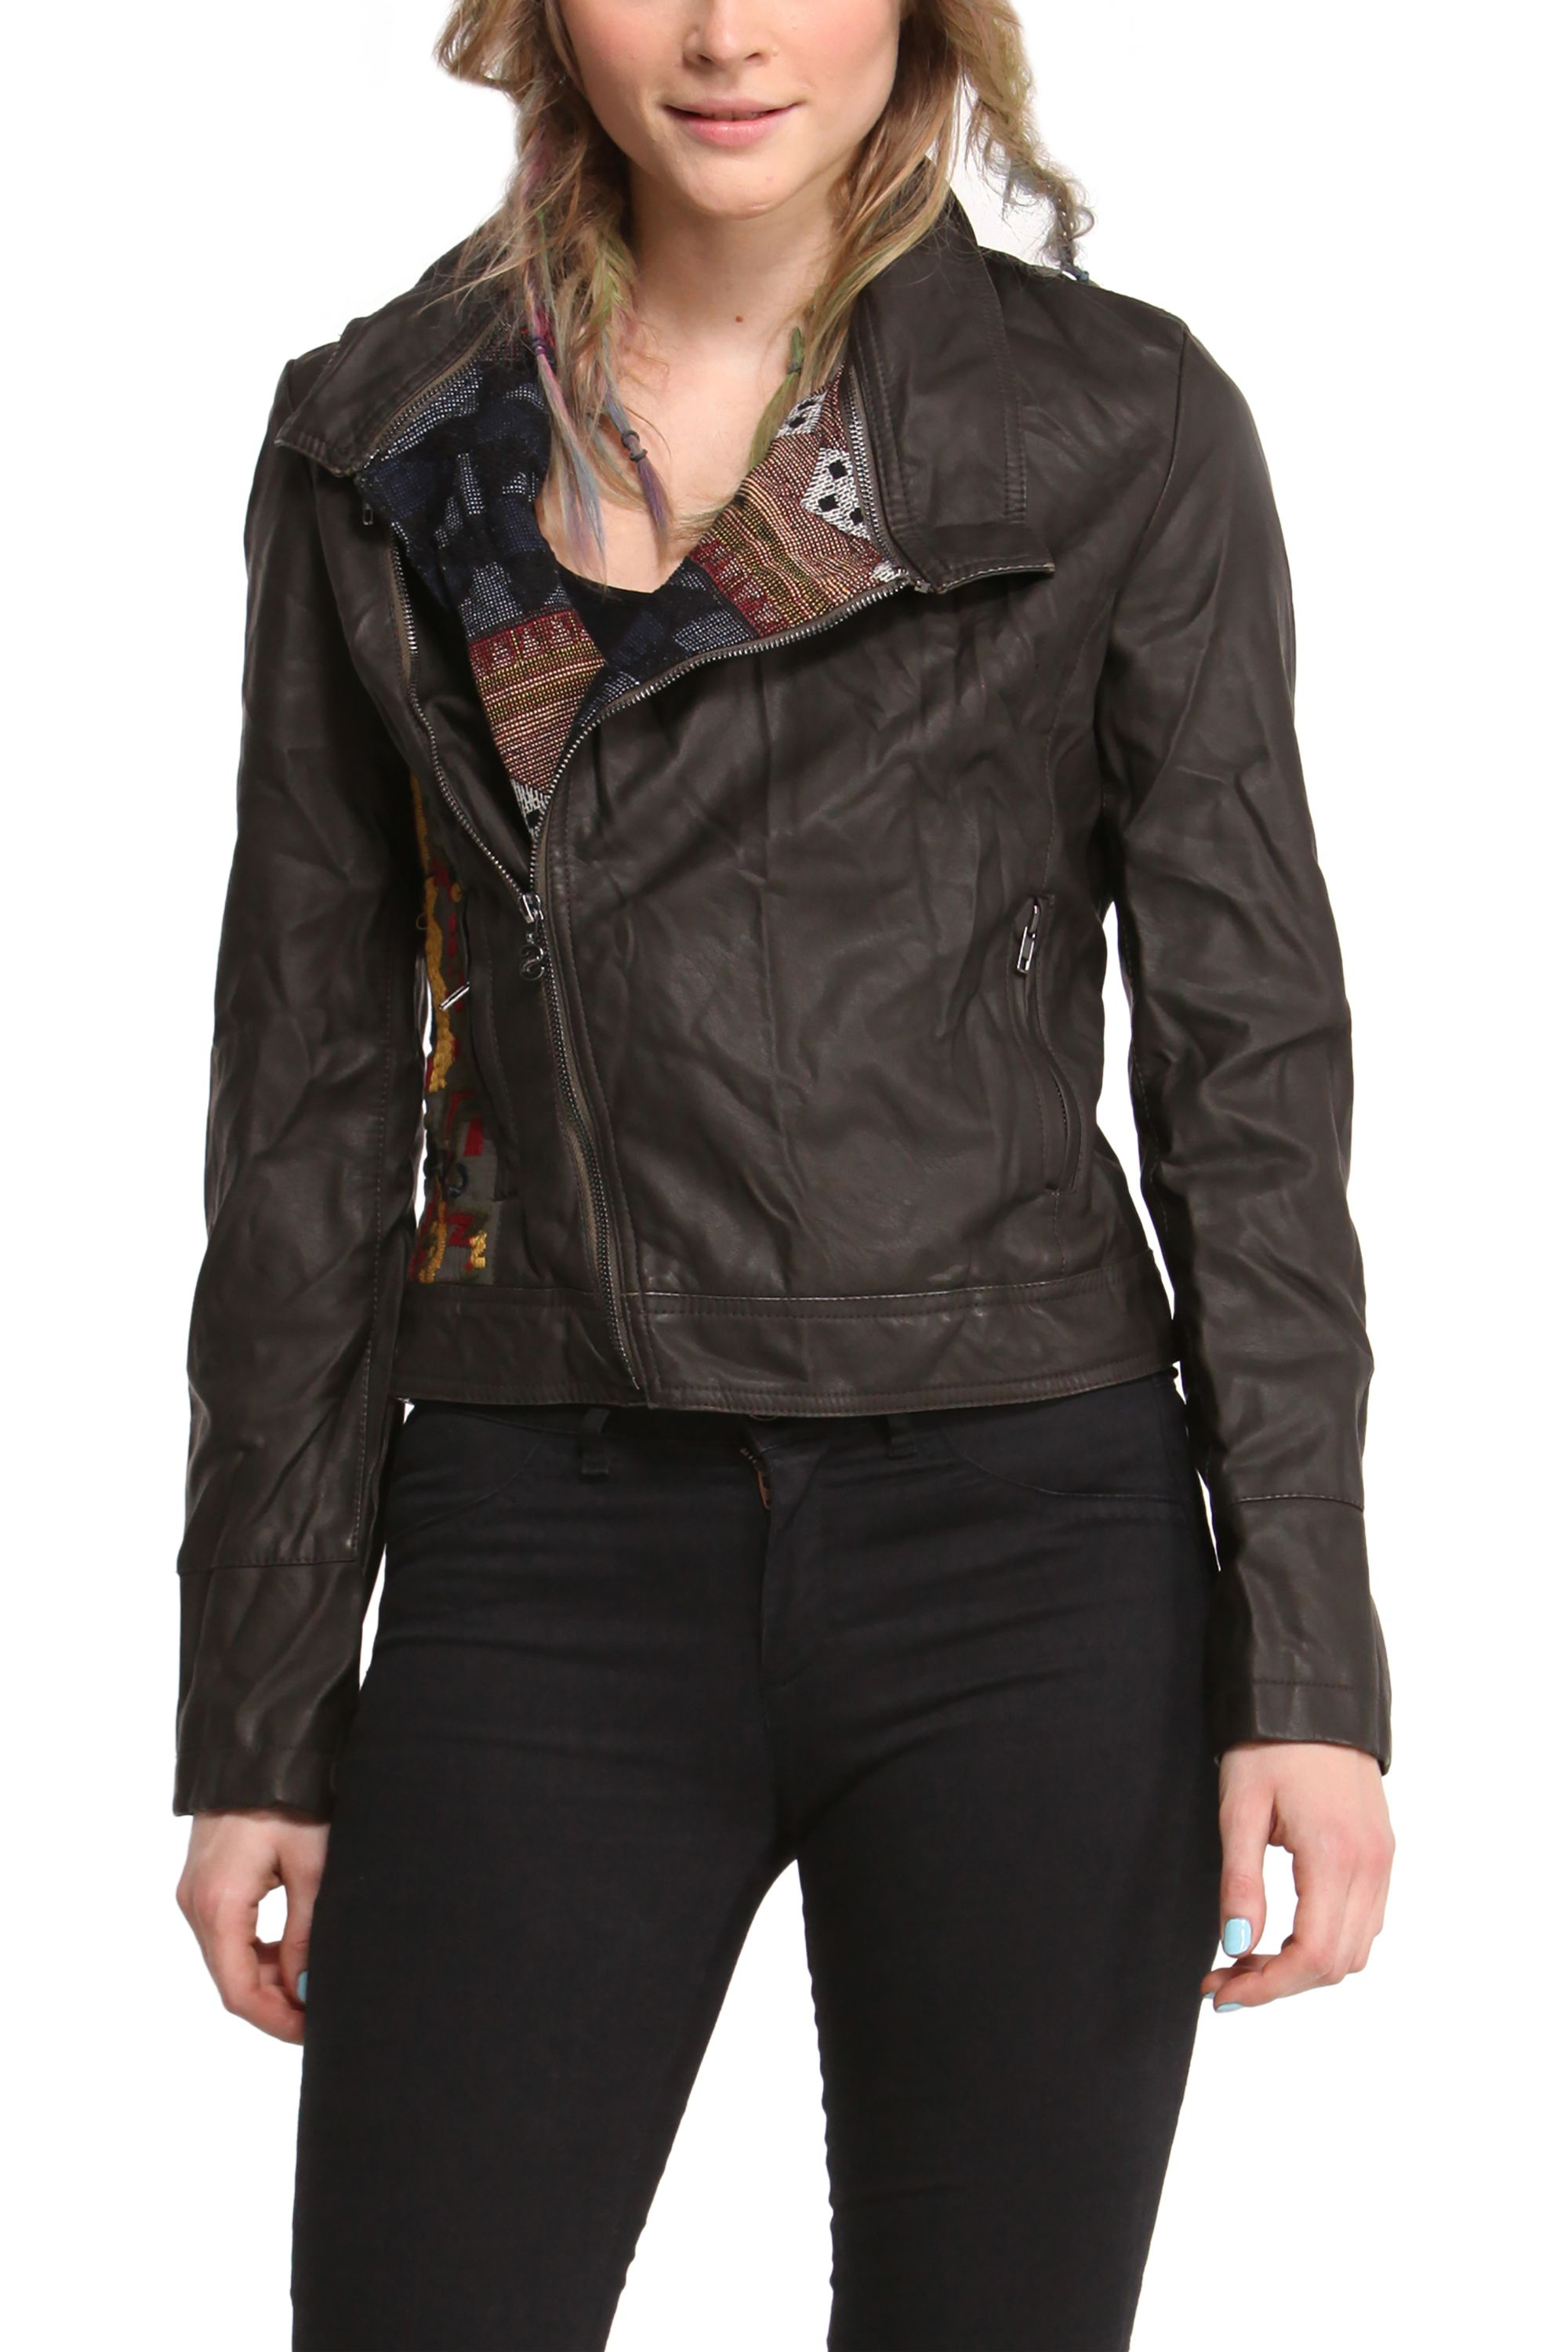 Lanco short jacket